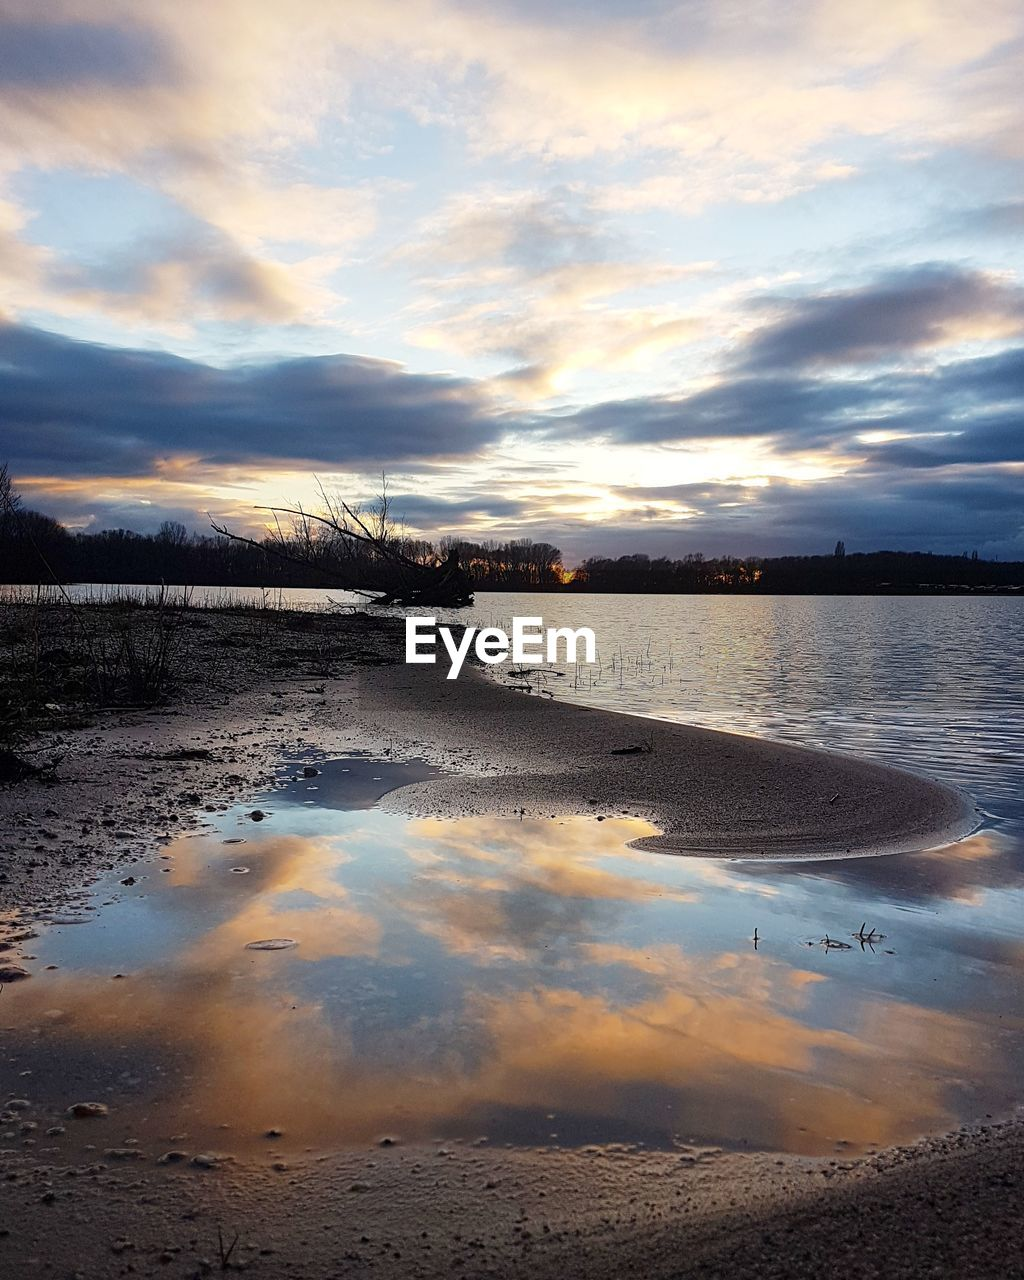 water, cloud - sky, reflection, tranquility, tranquil scene, nature, scenics, sky, beauty in nature, sunset, no people, outdoors, lake, day